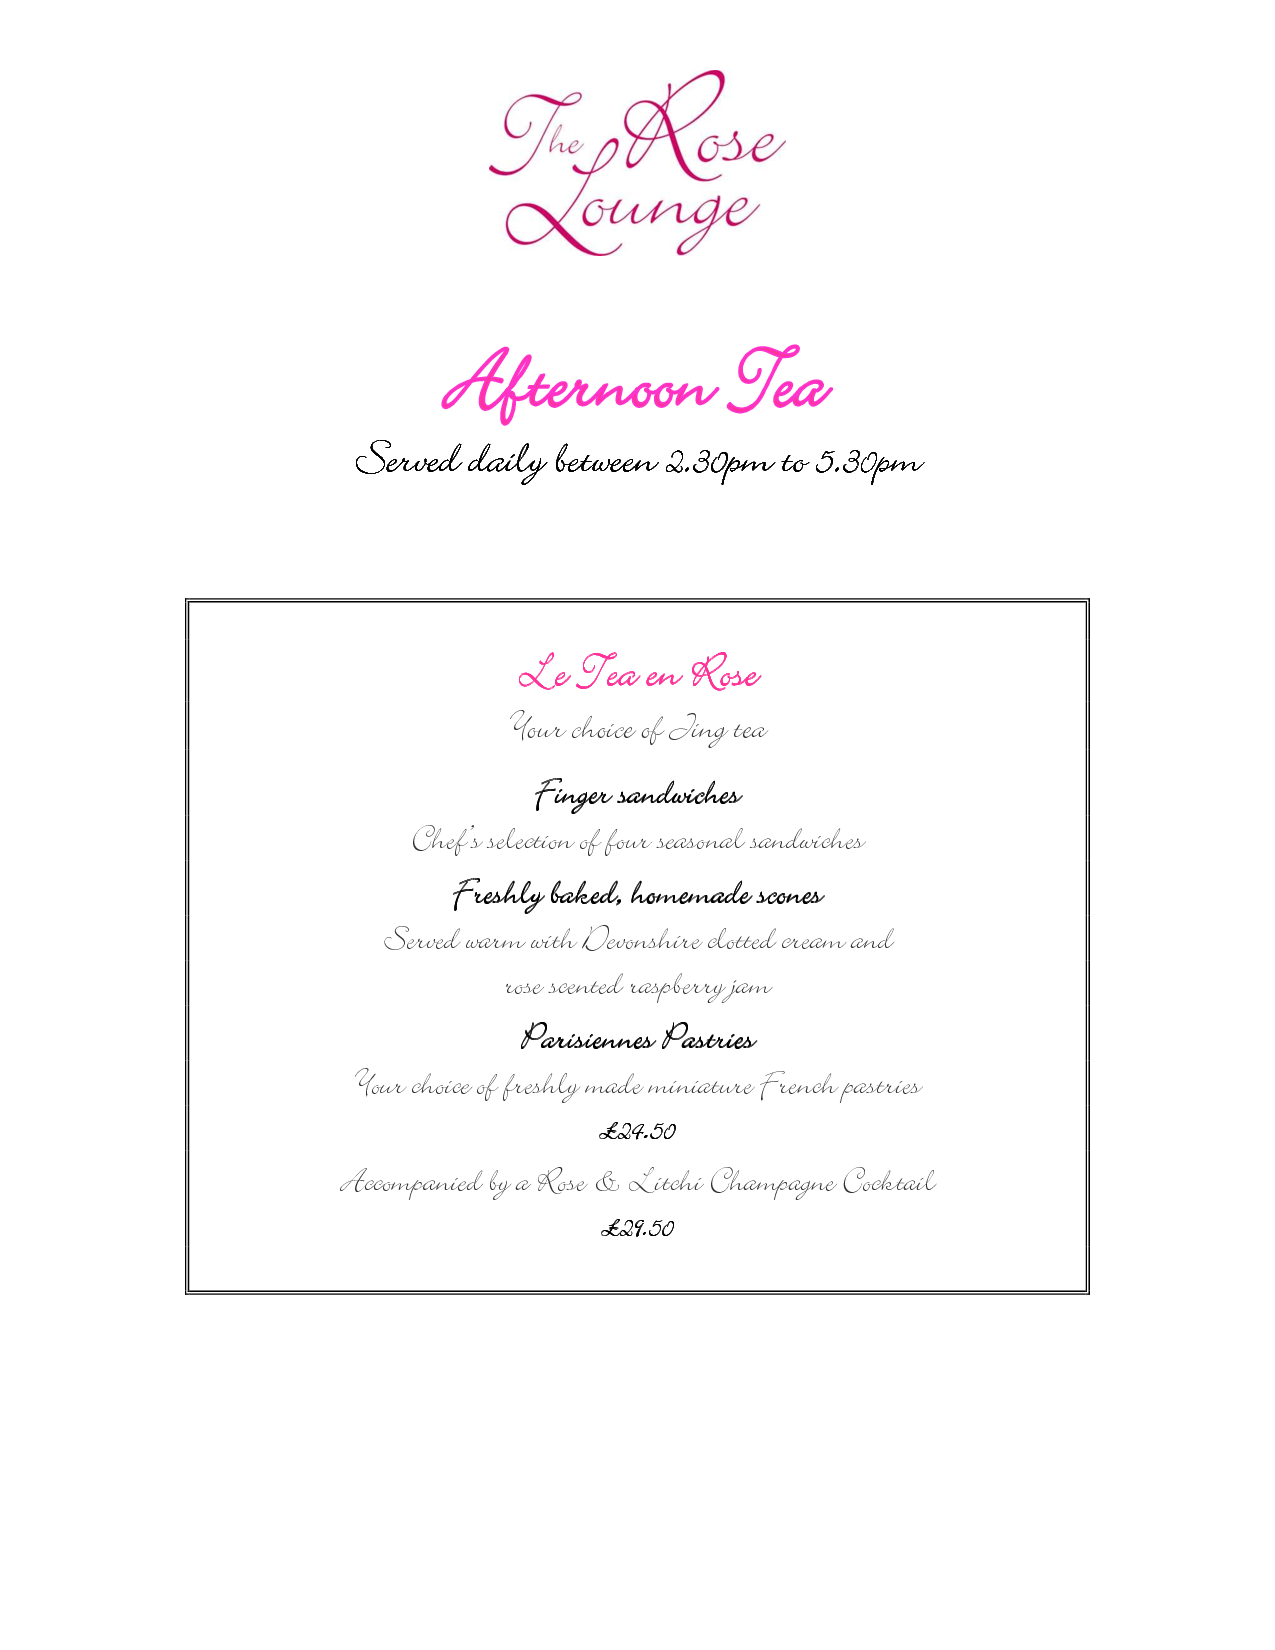 Vintage Afternoon Tea Menu Template  Google Search  High Tea